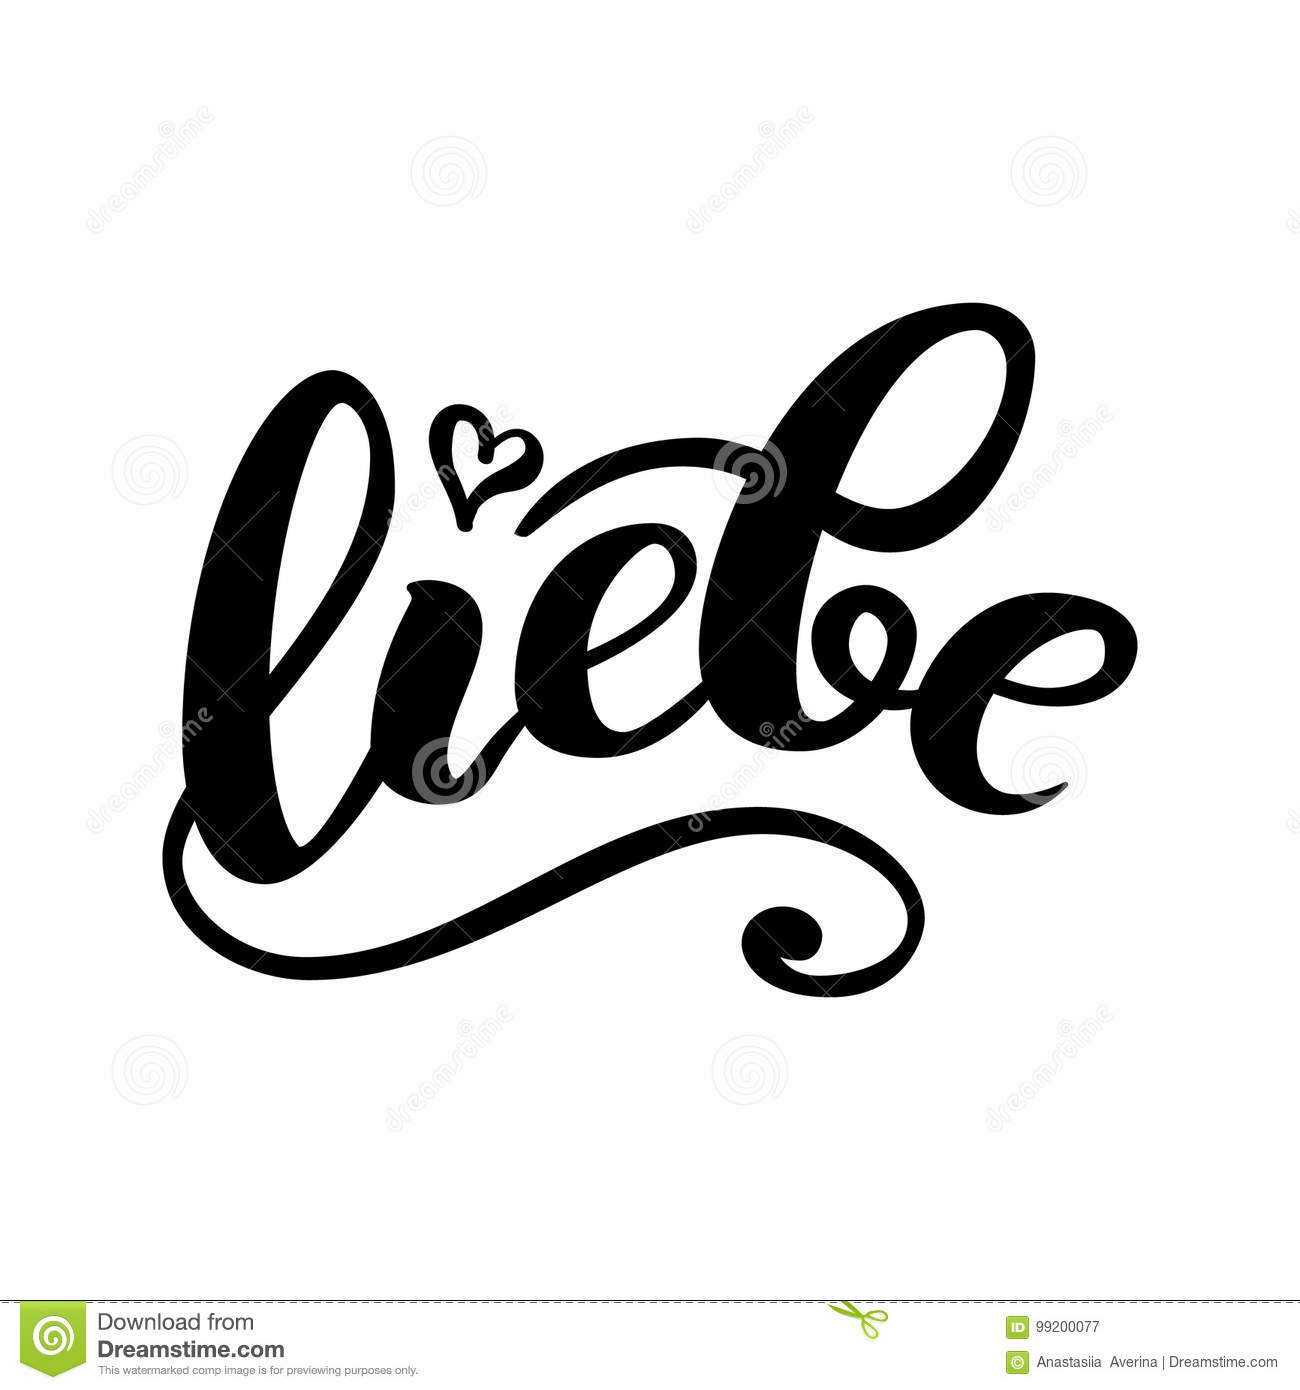 Liebe - LOVE in German. Happy Valentines day card, Hand-written lettering isolated on white. Vector illustration.